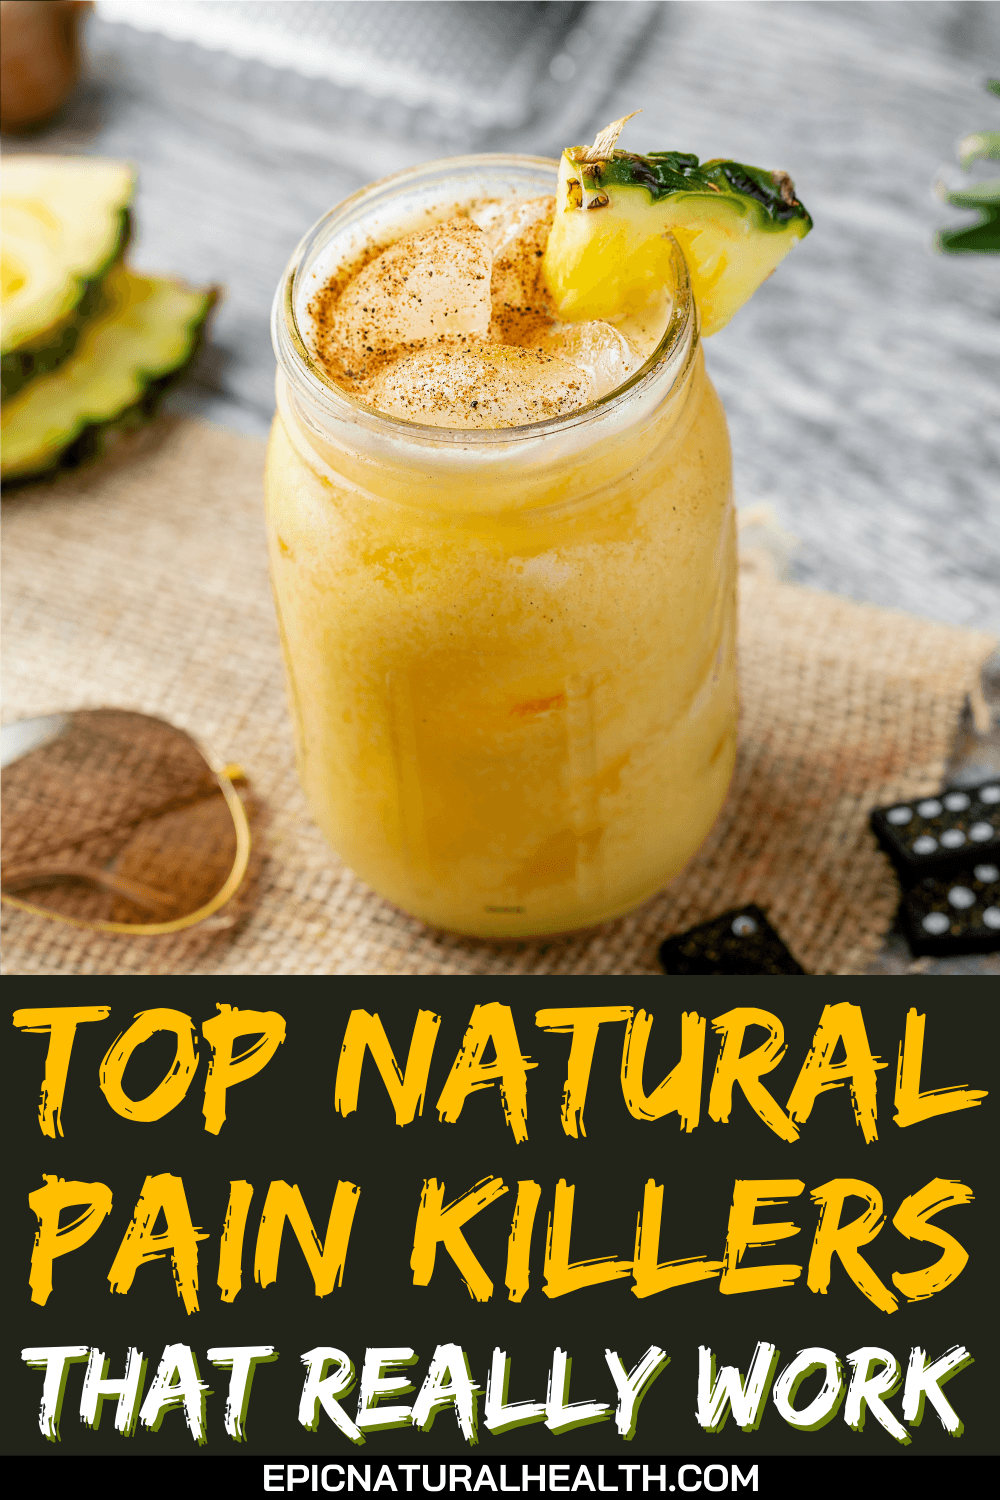 Top Natural Pain Killers That Really Work